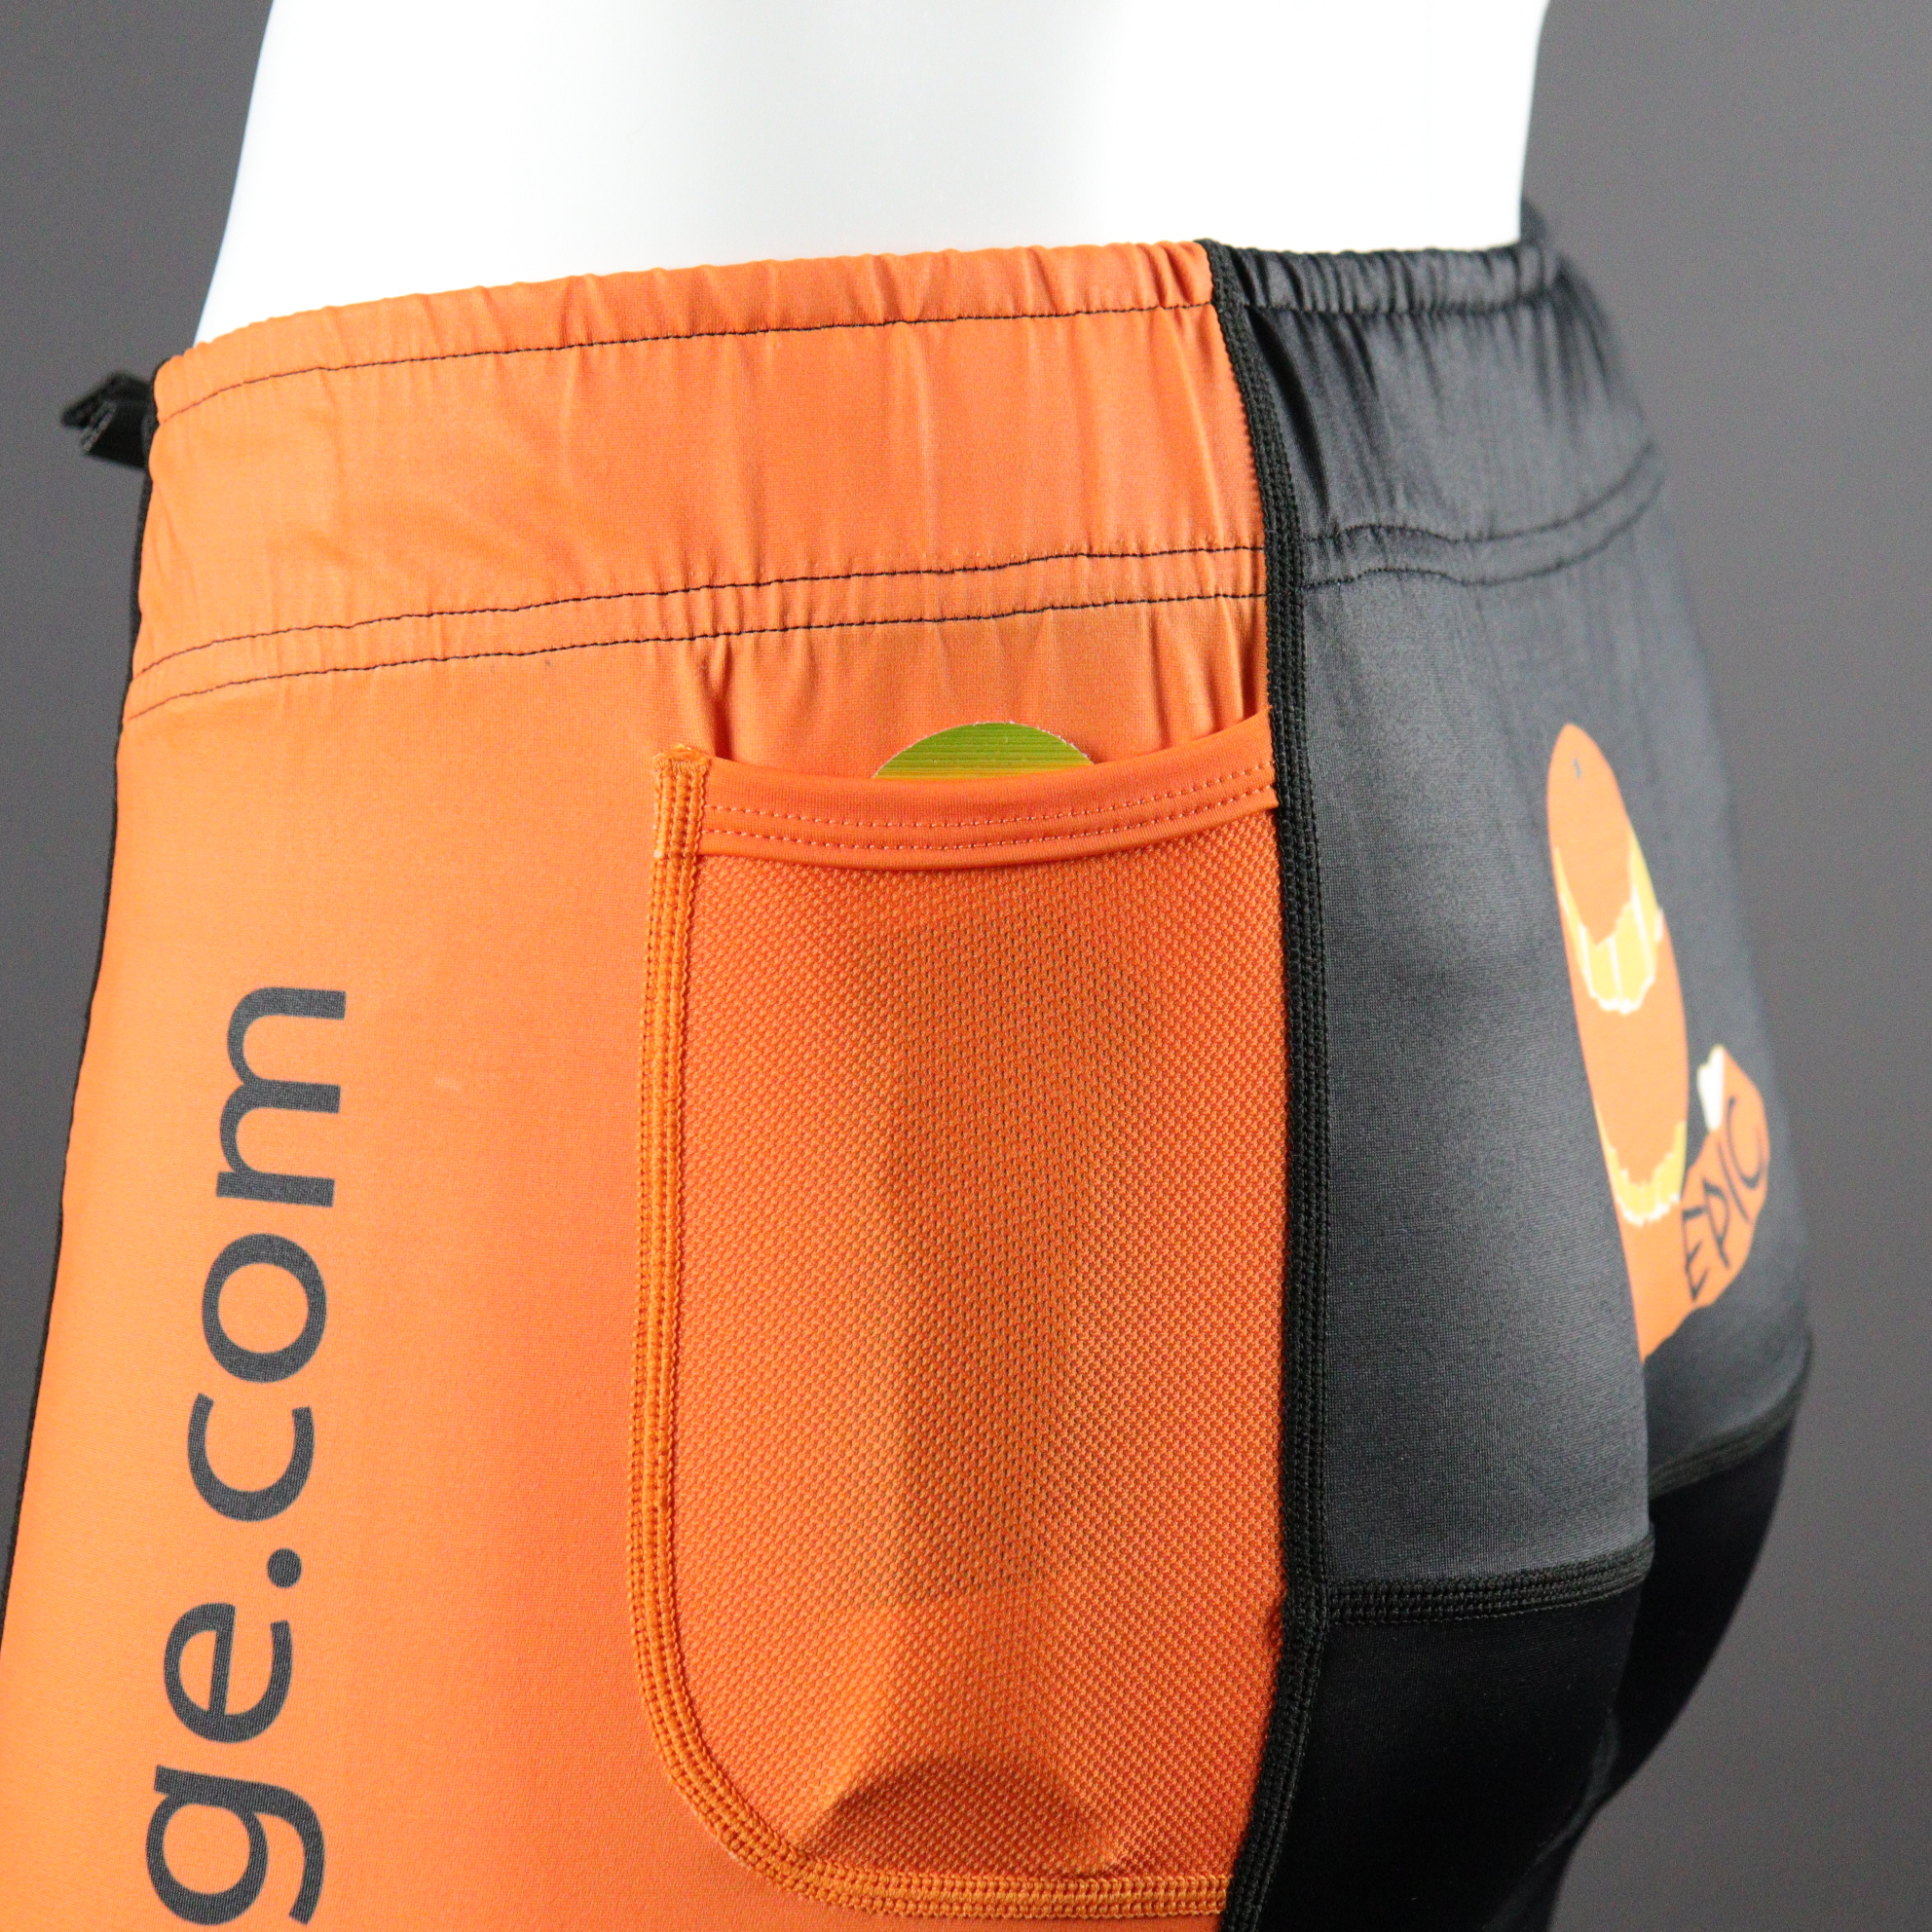 Endurance Tri Shorts - Twin side Mesh pockets